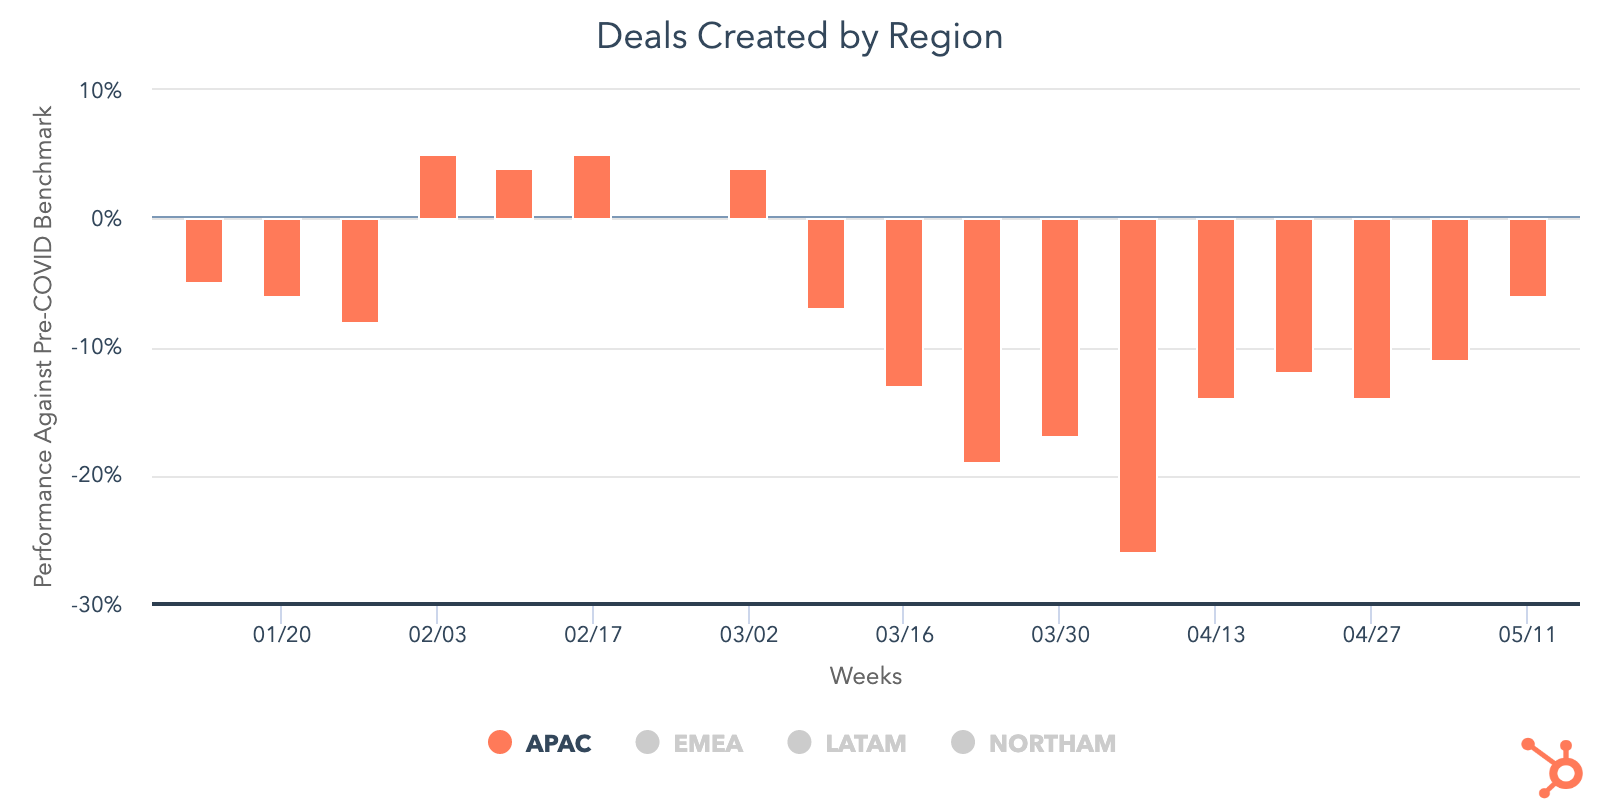 deals created by region